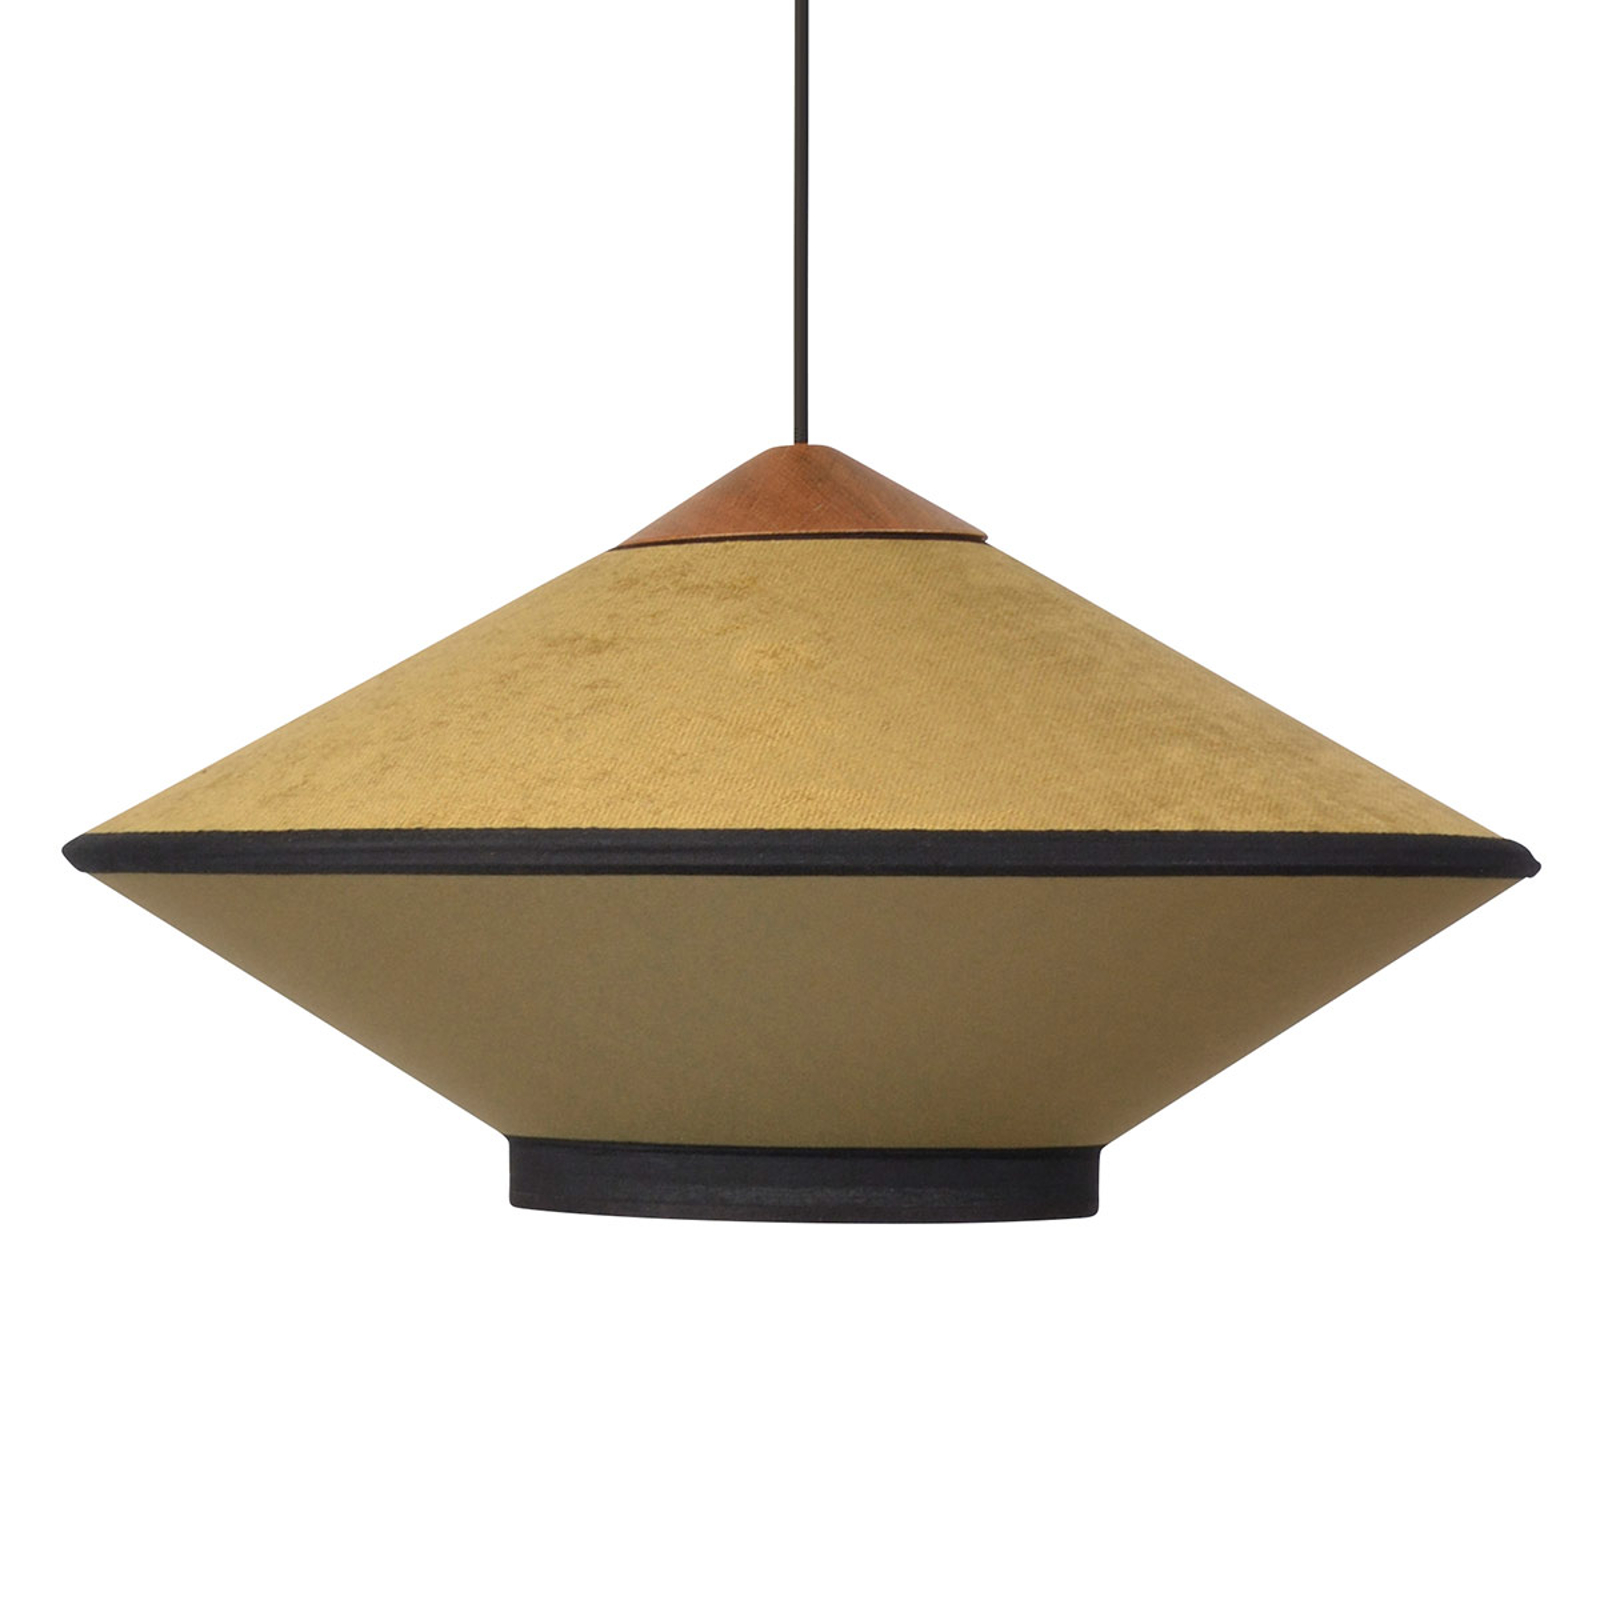 Forestier Cymbal S hanglamp 50cm brons